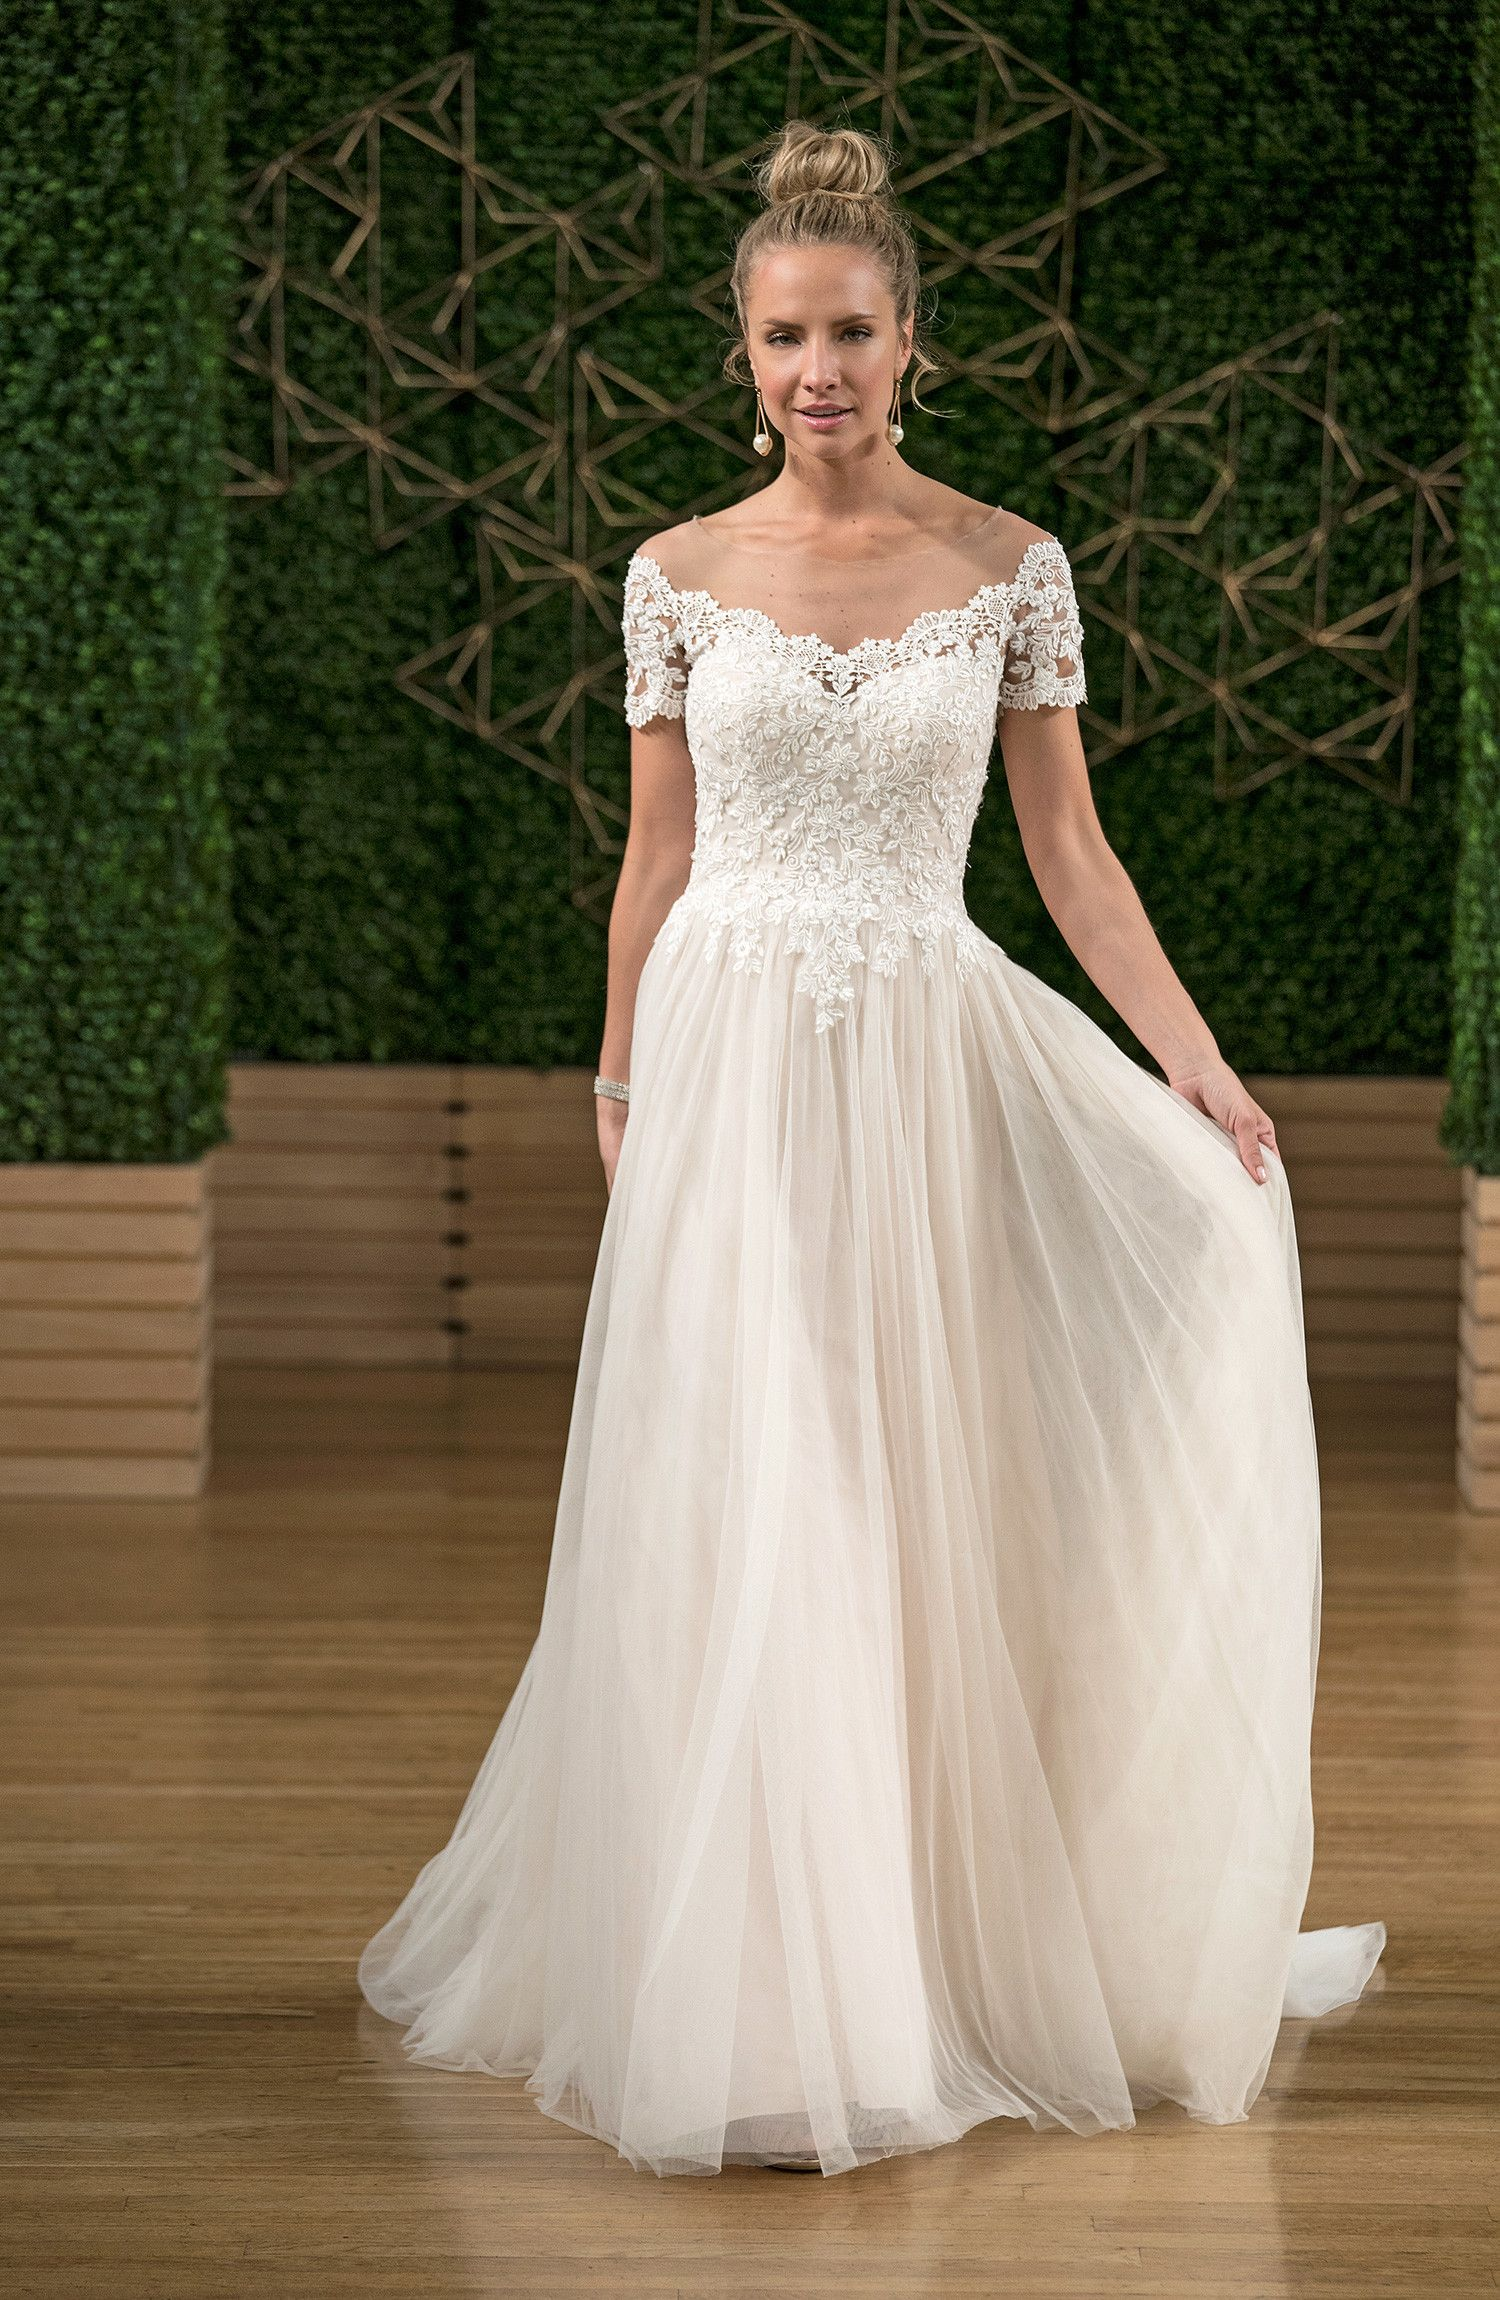 Tulle skirt wedding dress  Offtheshoulder Aline wedding dress with lace bodice and tulle